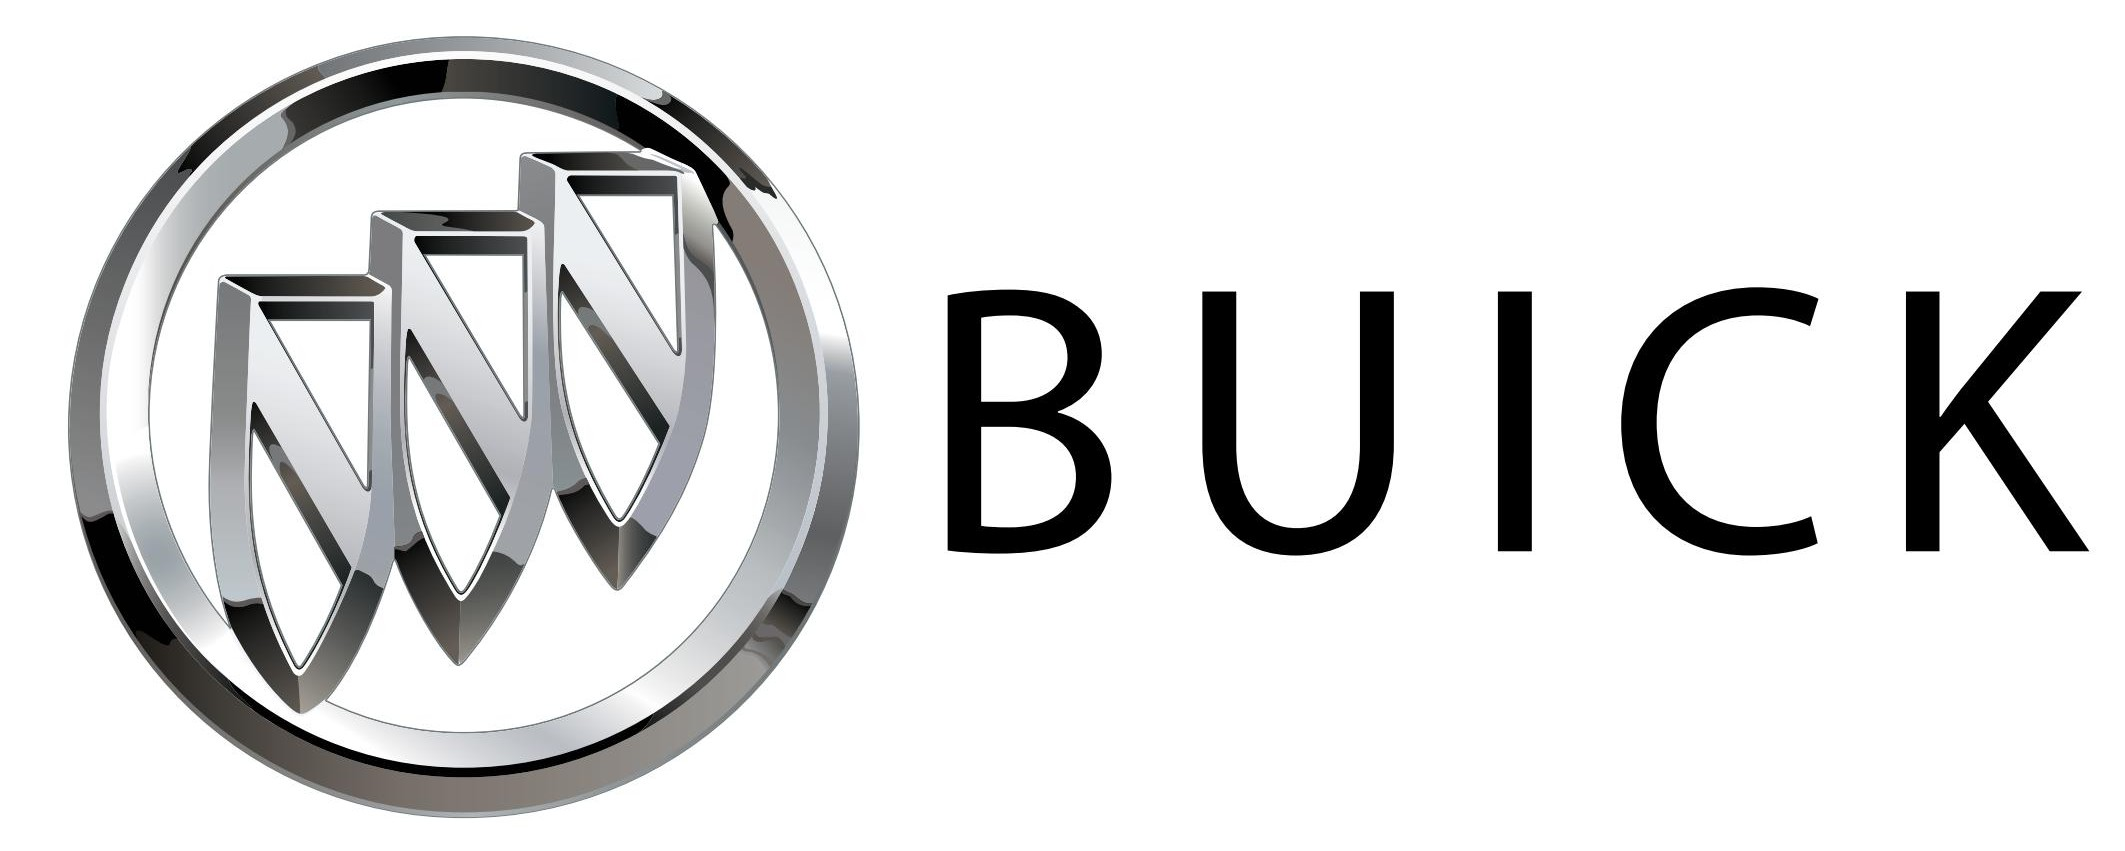 Buick Is A Premium Brand Of General Motors (Gm). - Buick Black, Transparent background PNG HD thumbnail